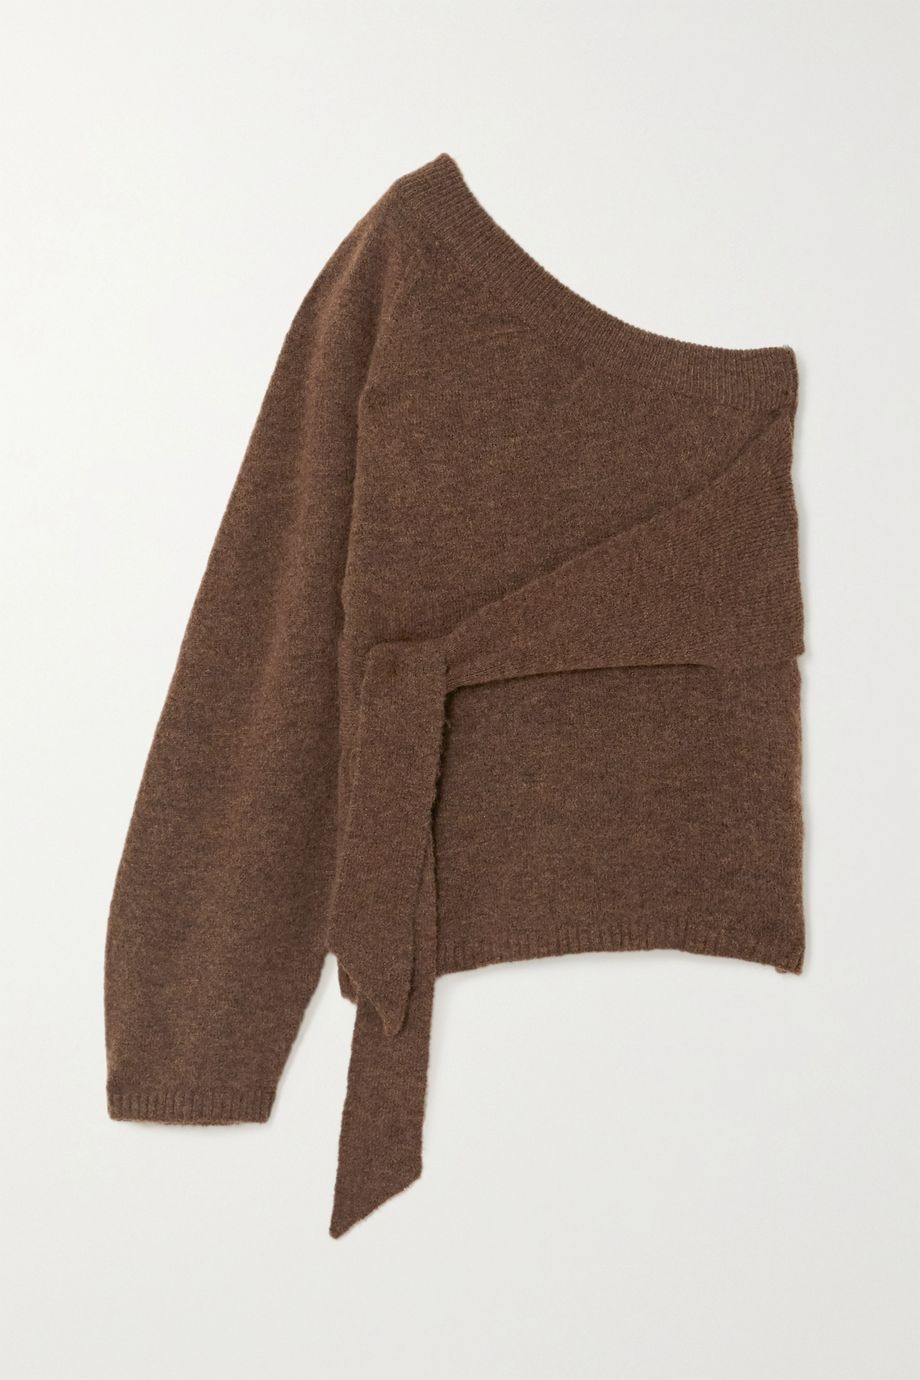 Nanushka Cleto cropped one-sleeve tie-detailed stretch-knit sweater